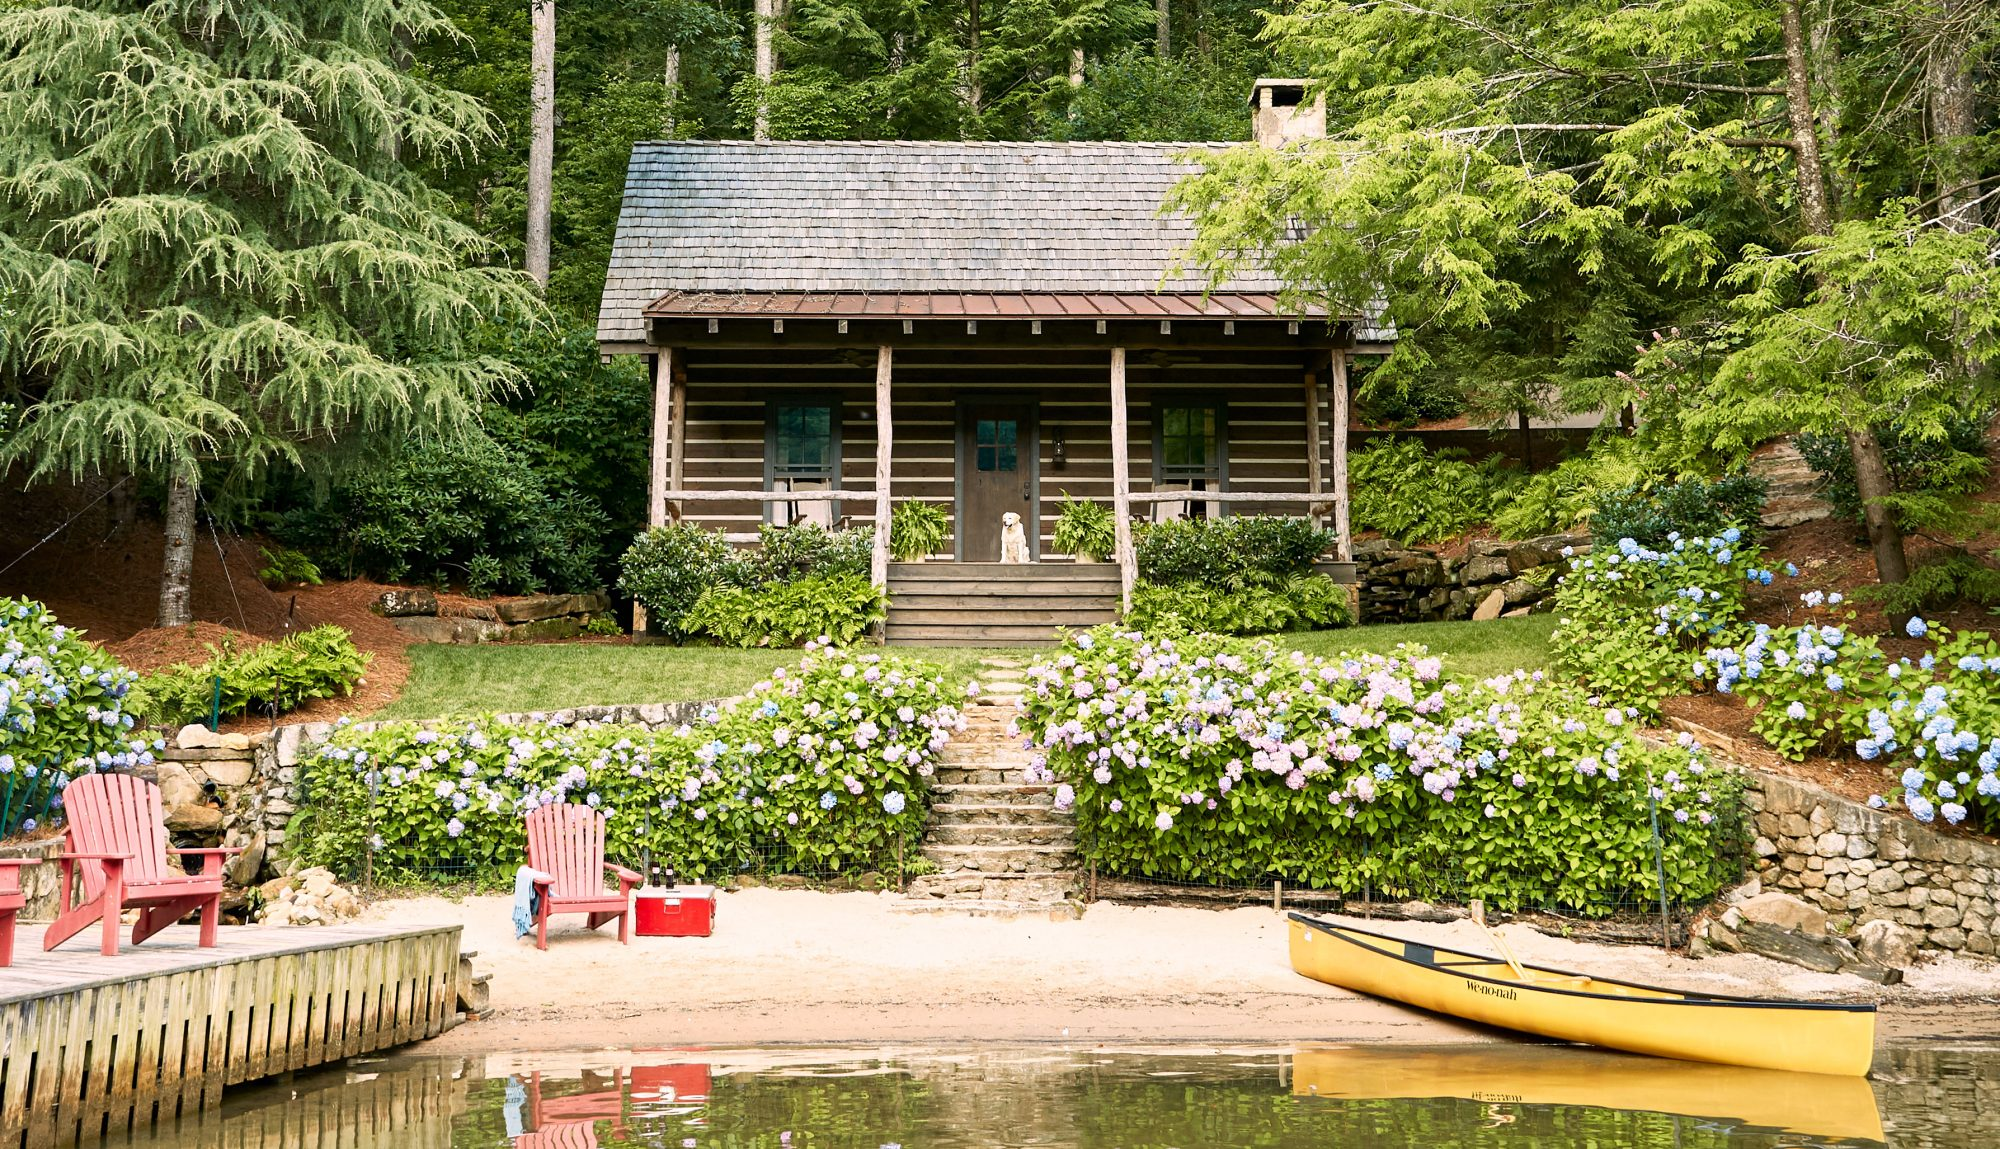 Log cabin on the lake with hydrangea bushes